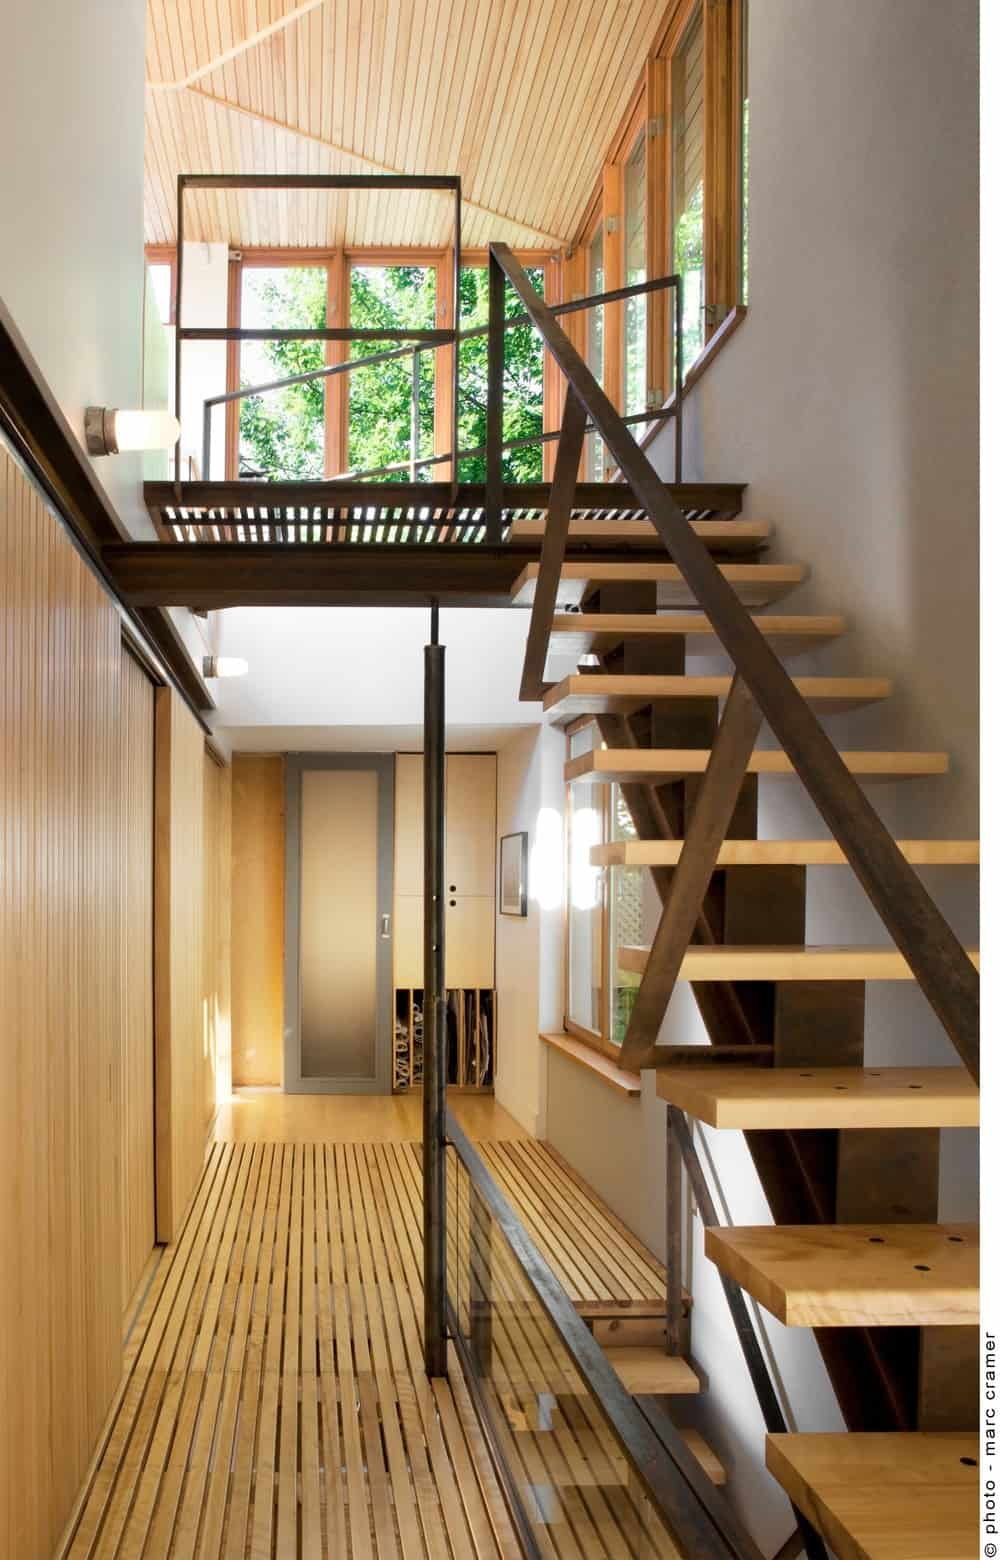 The hallway features hardwood flooring all the way to the staircase. Photo credit: Marc Cramer